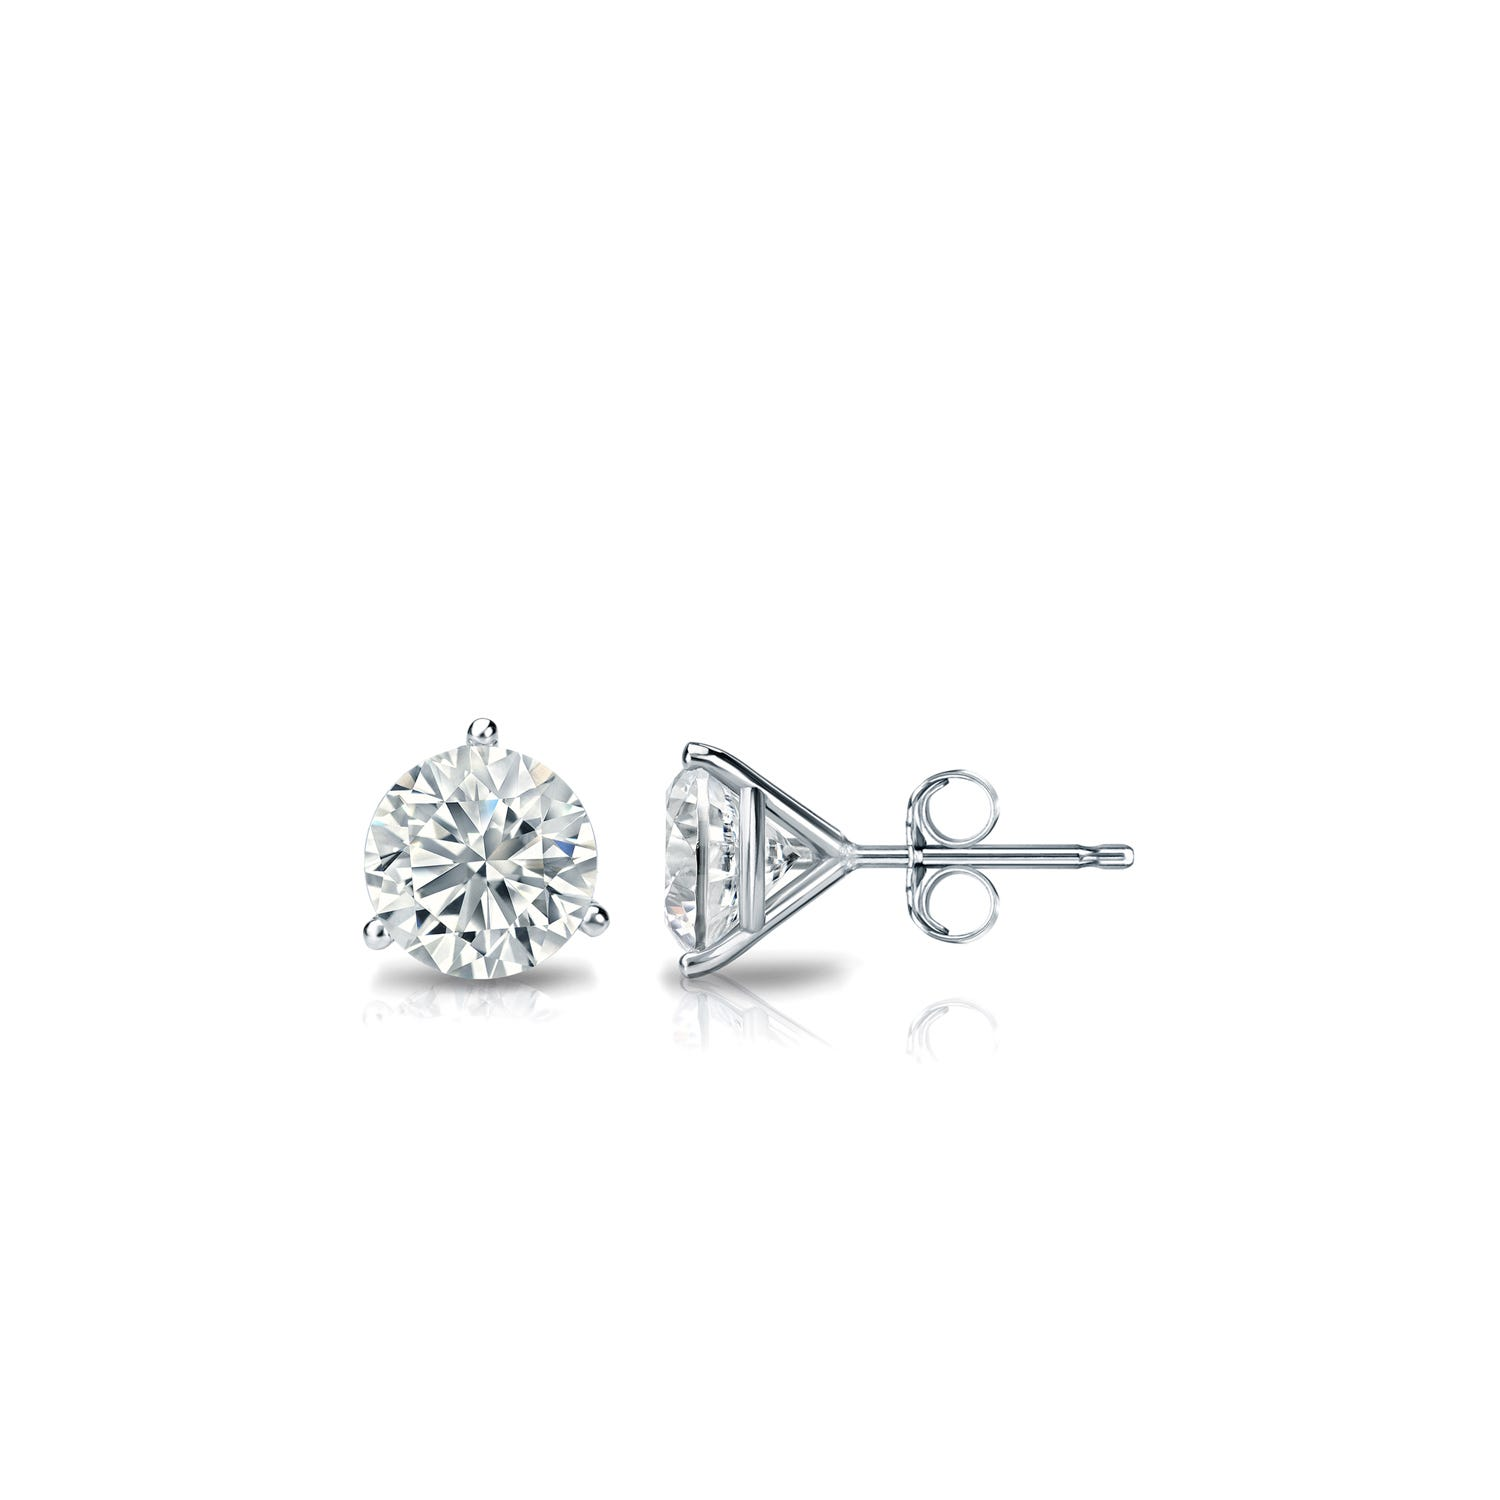 1/3 CTTW Round Diamond Solitaire Stud Earrings IJ I2 in 18K White Gold 3-Prong Setting